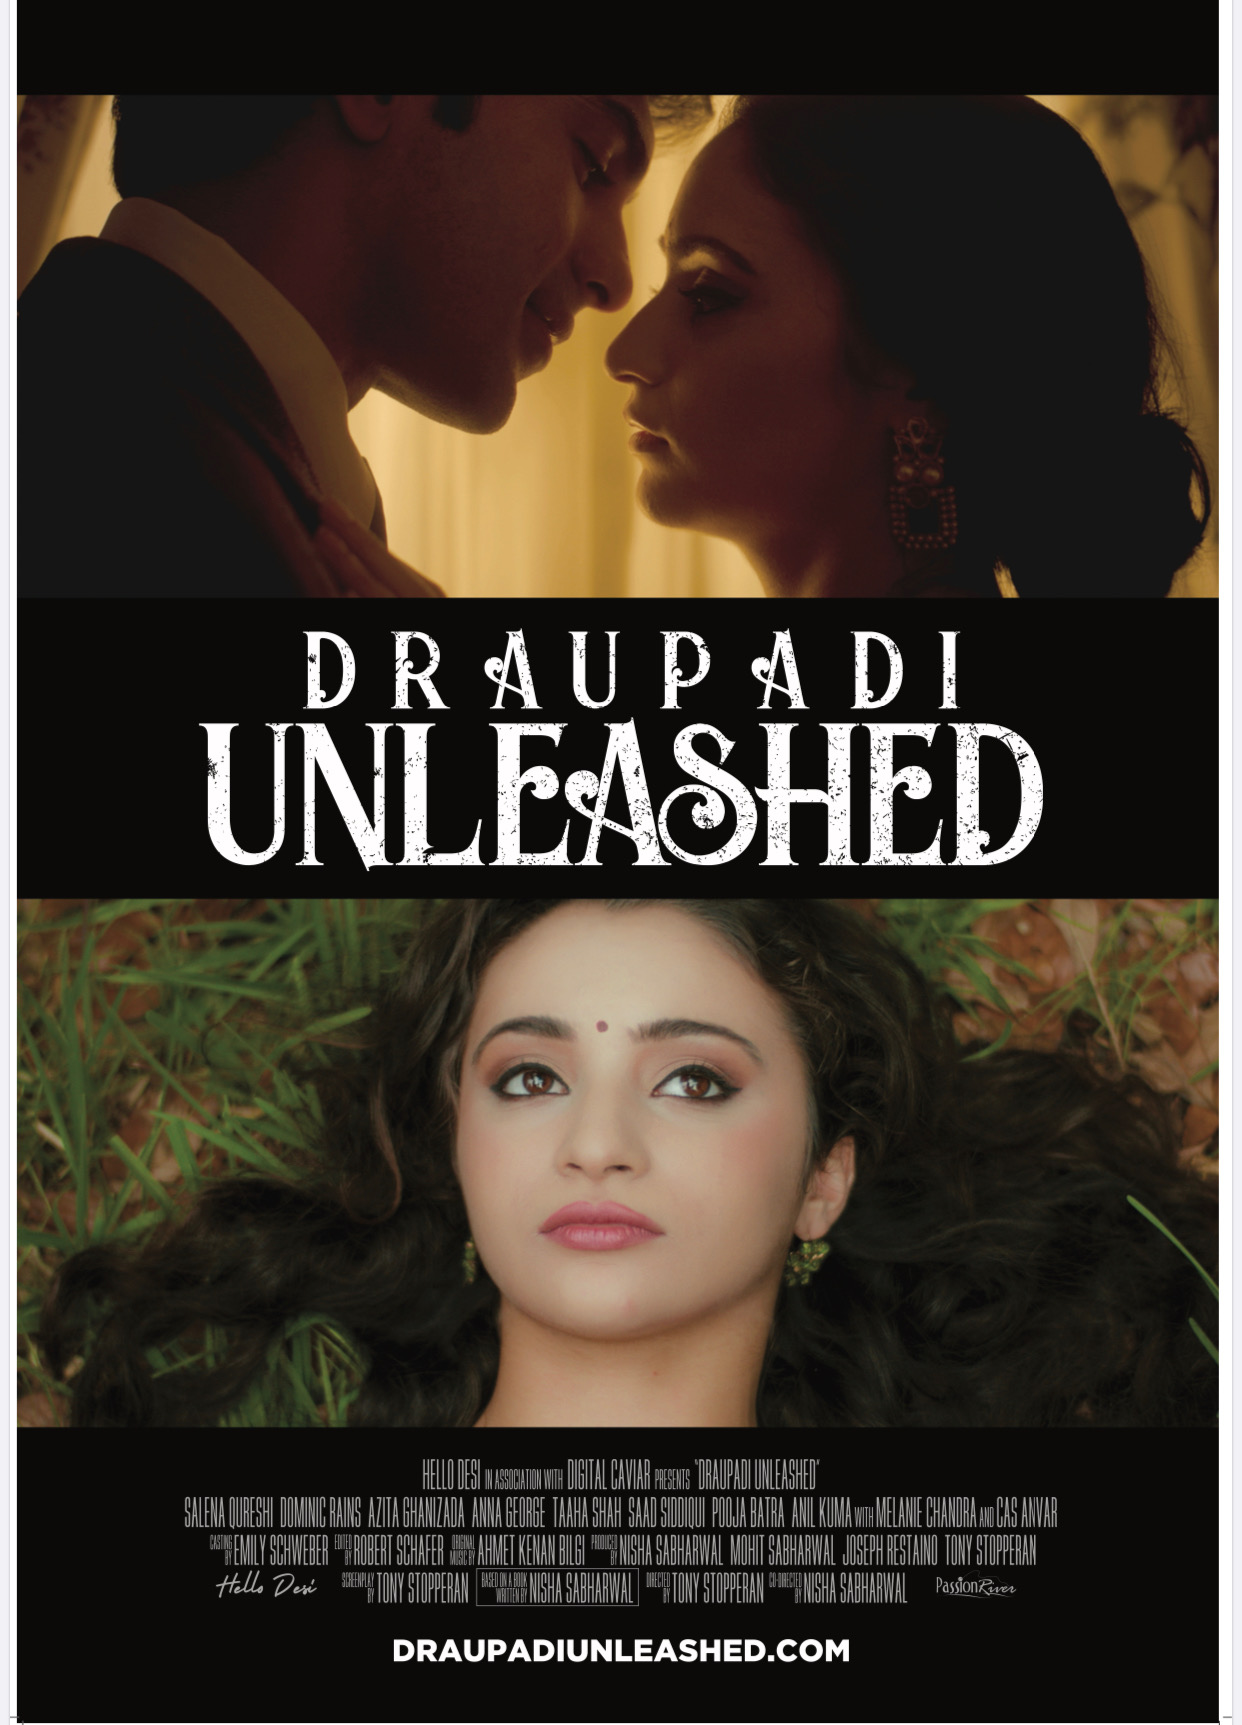 Draupadi Unleashed (2019) - IMDb